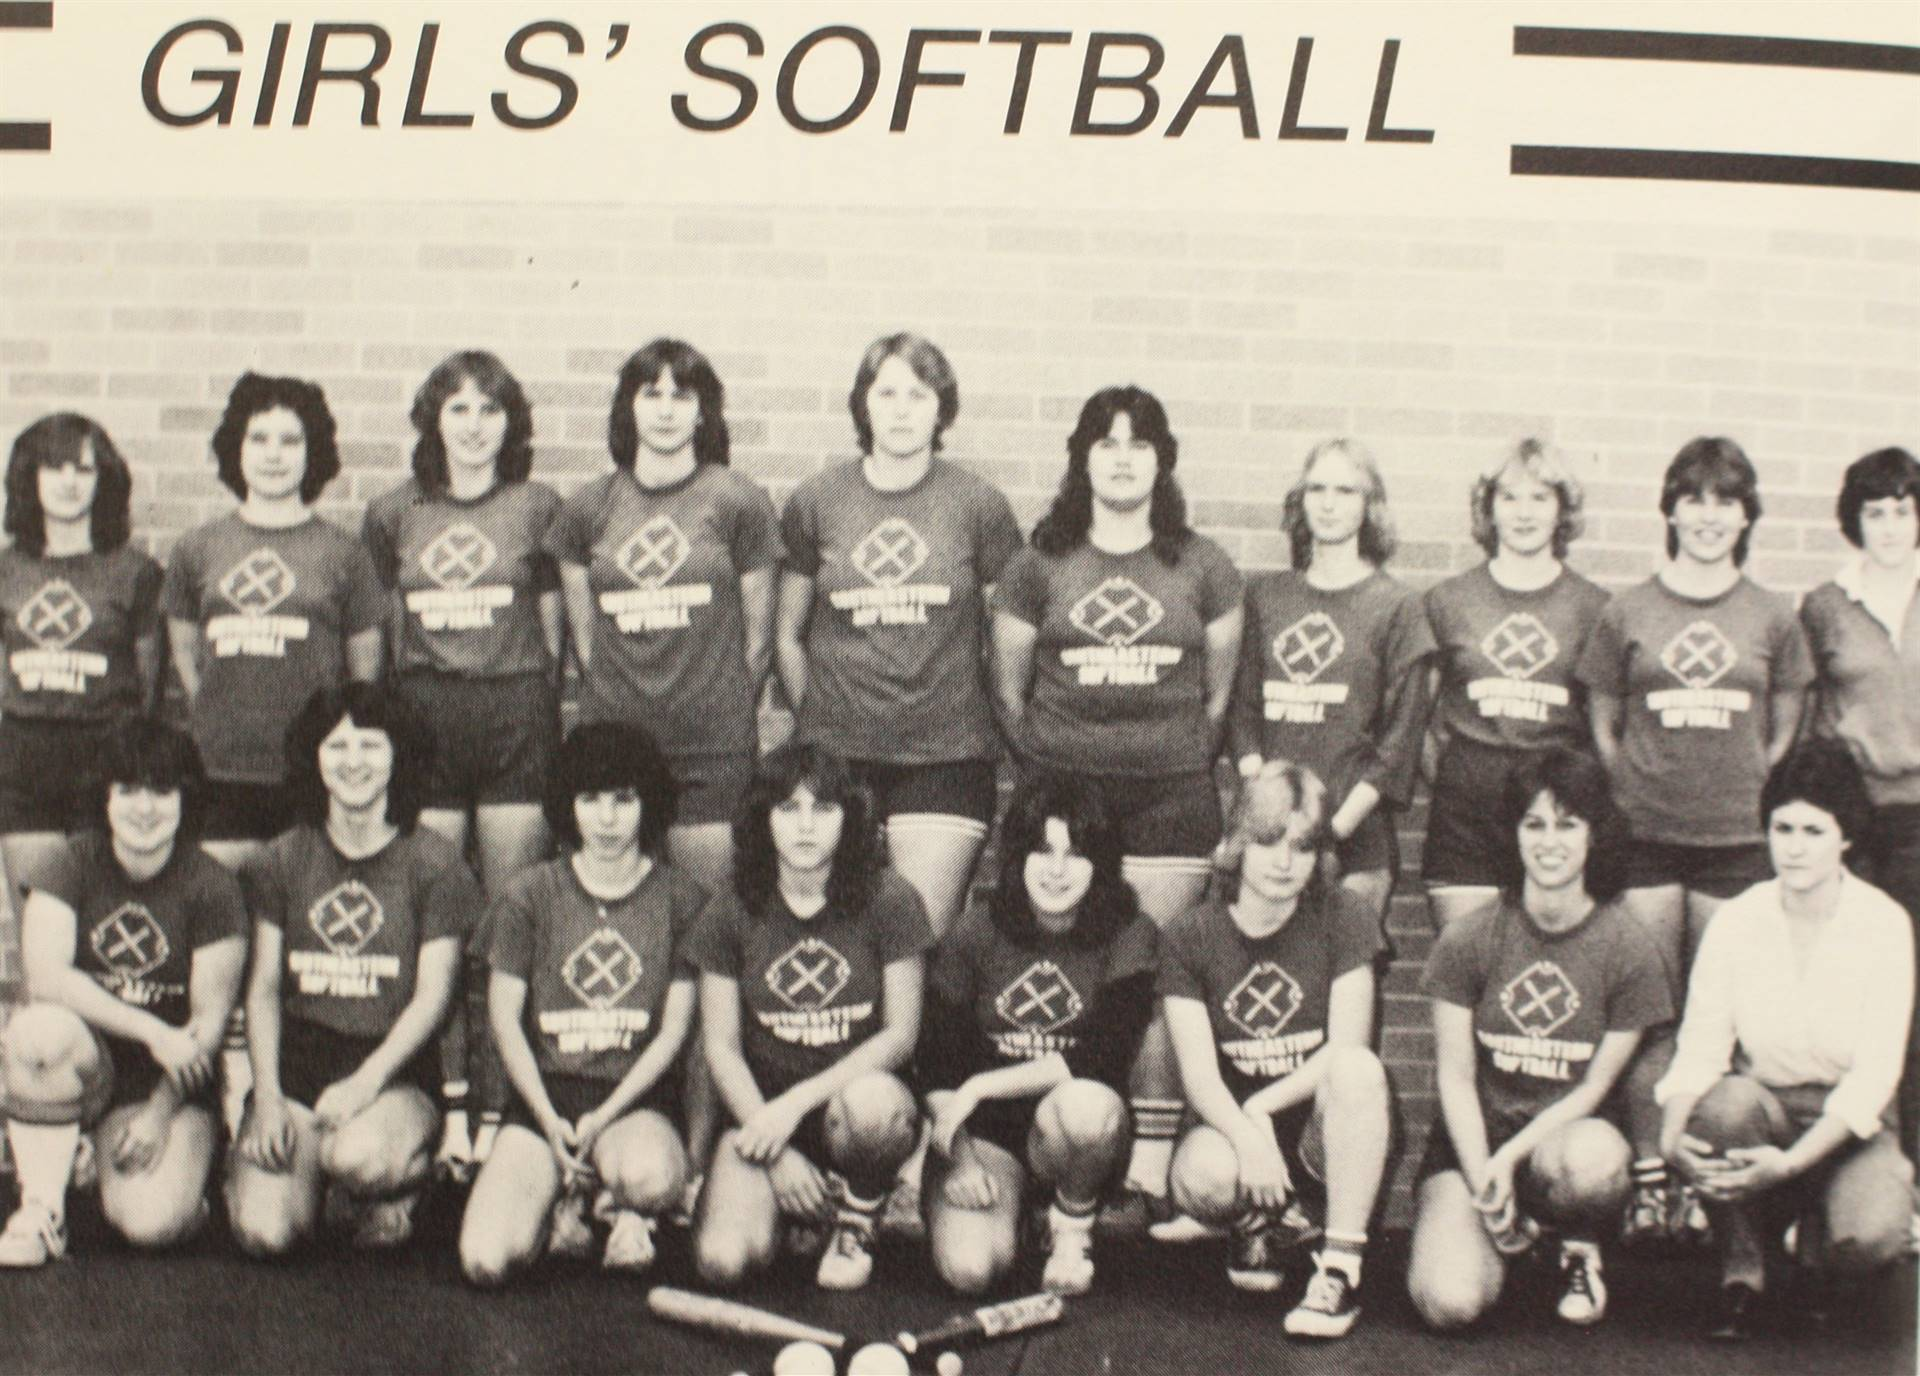 1982 Girls' Softball